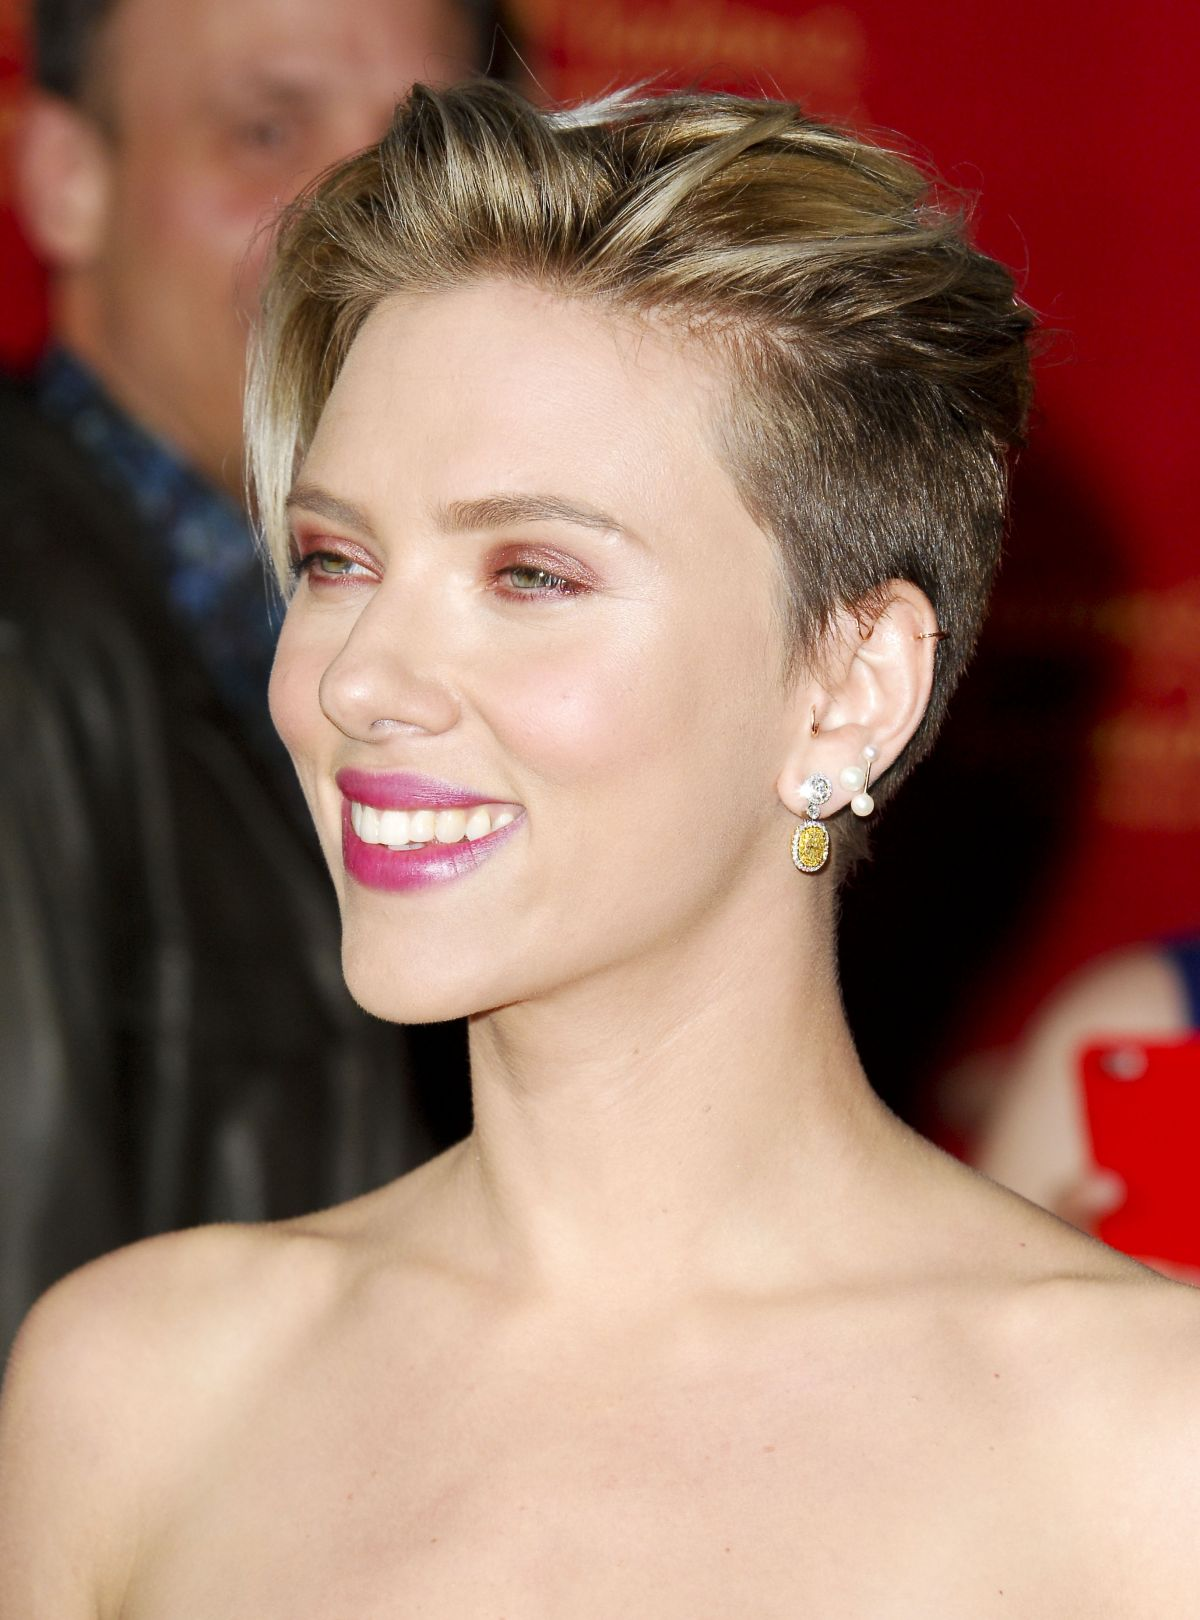 SCARLETT JOHANSSON at Avengers: Age of Ultron Premiere in Hollywood ... Scarlett Johansson